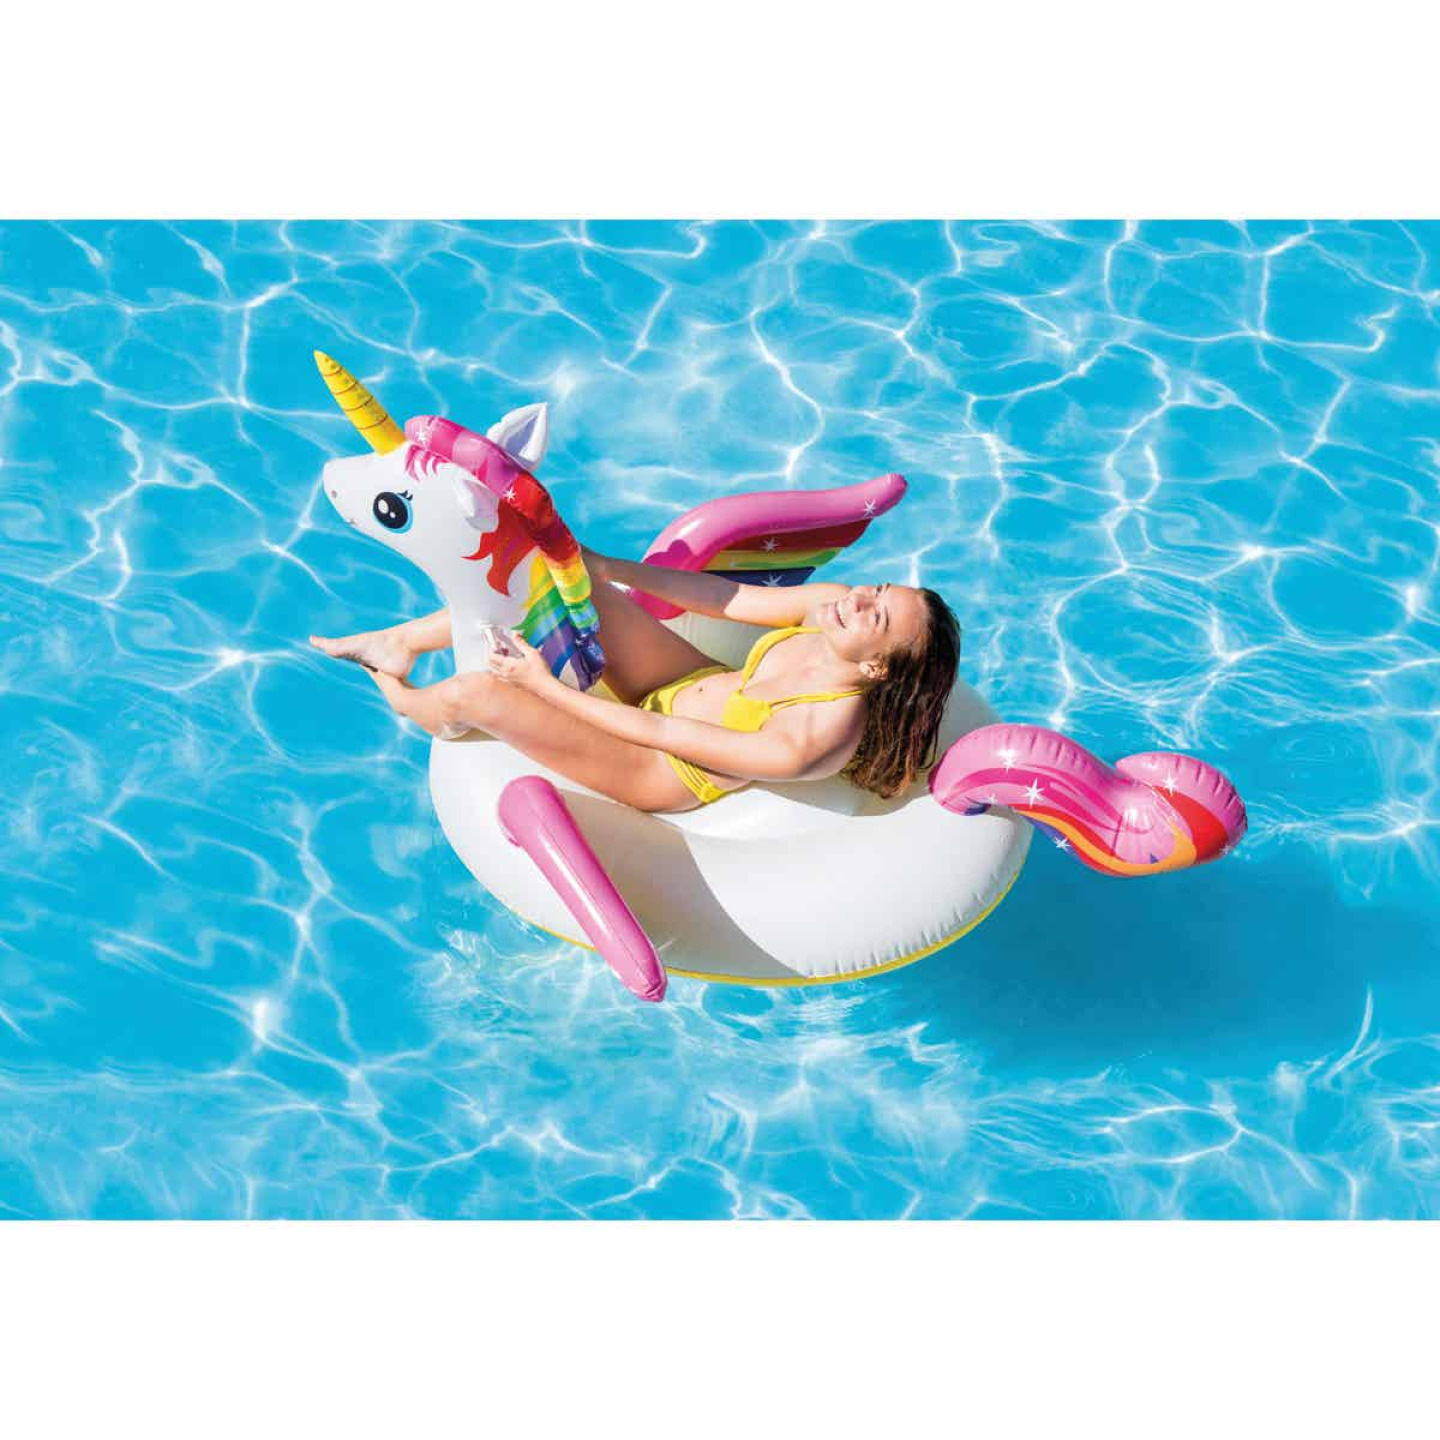 Intex Ride-On Unicorn Pool Float Image 3